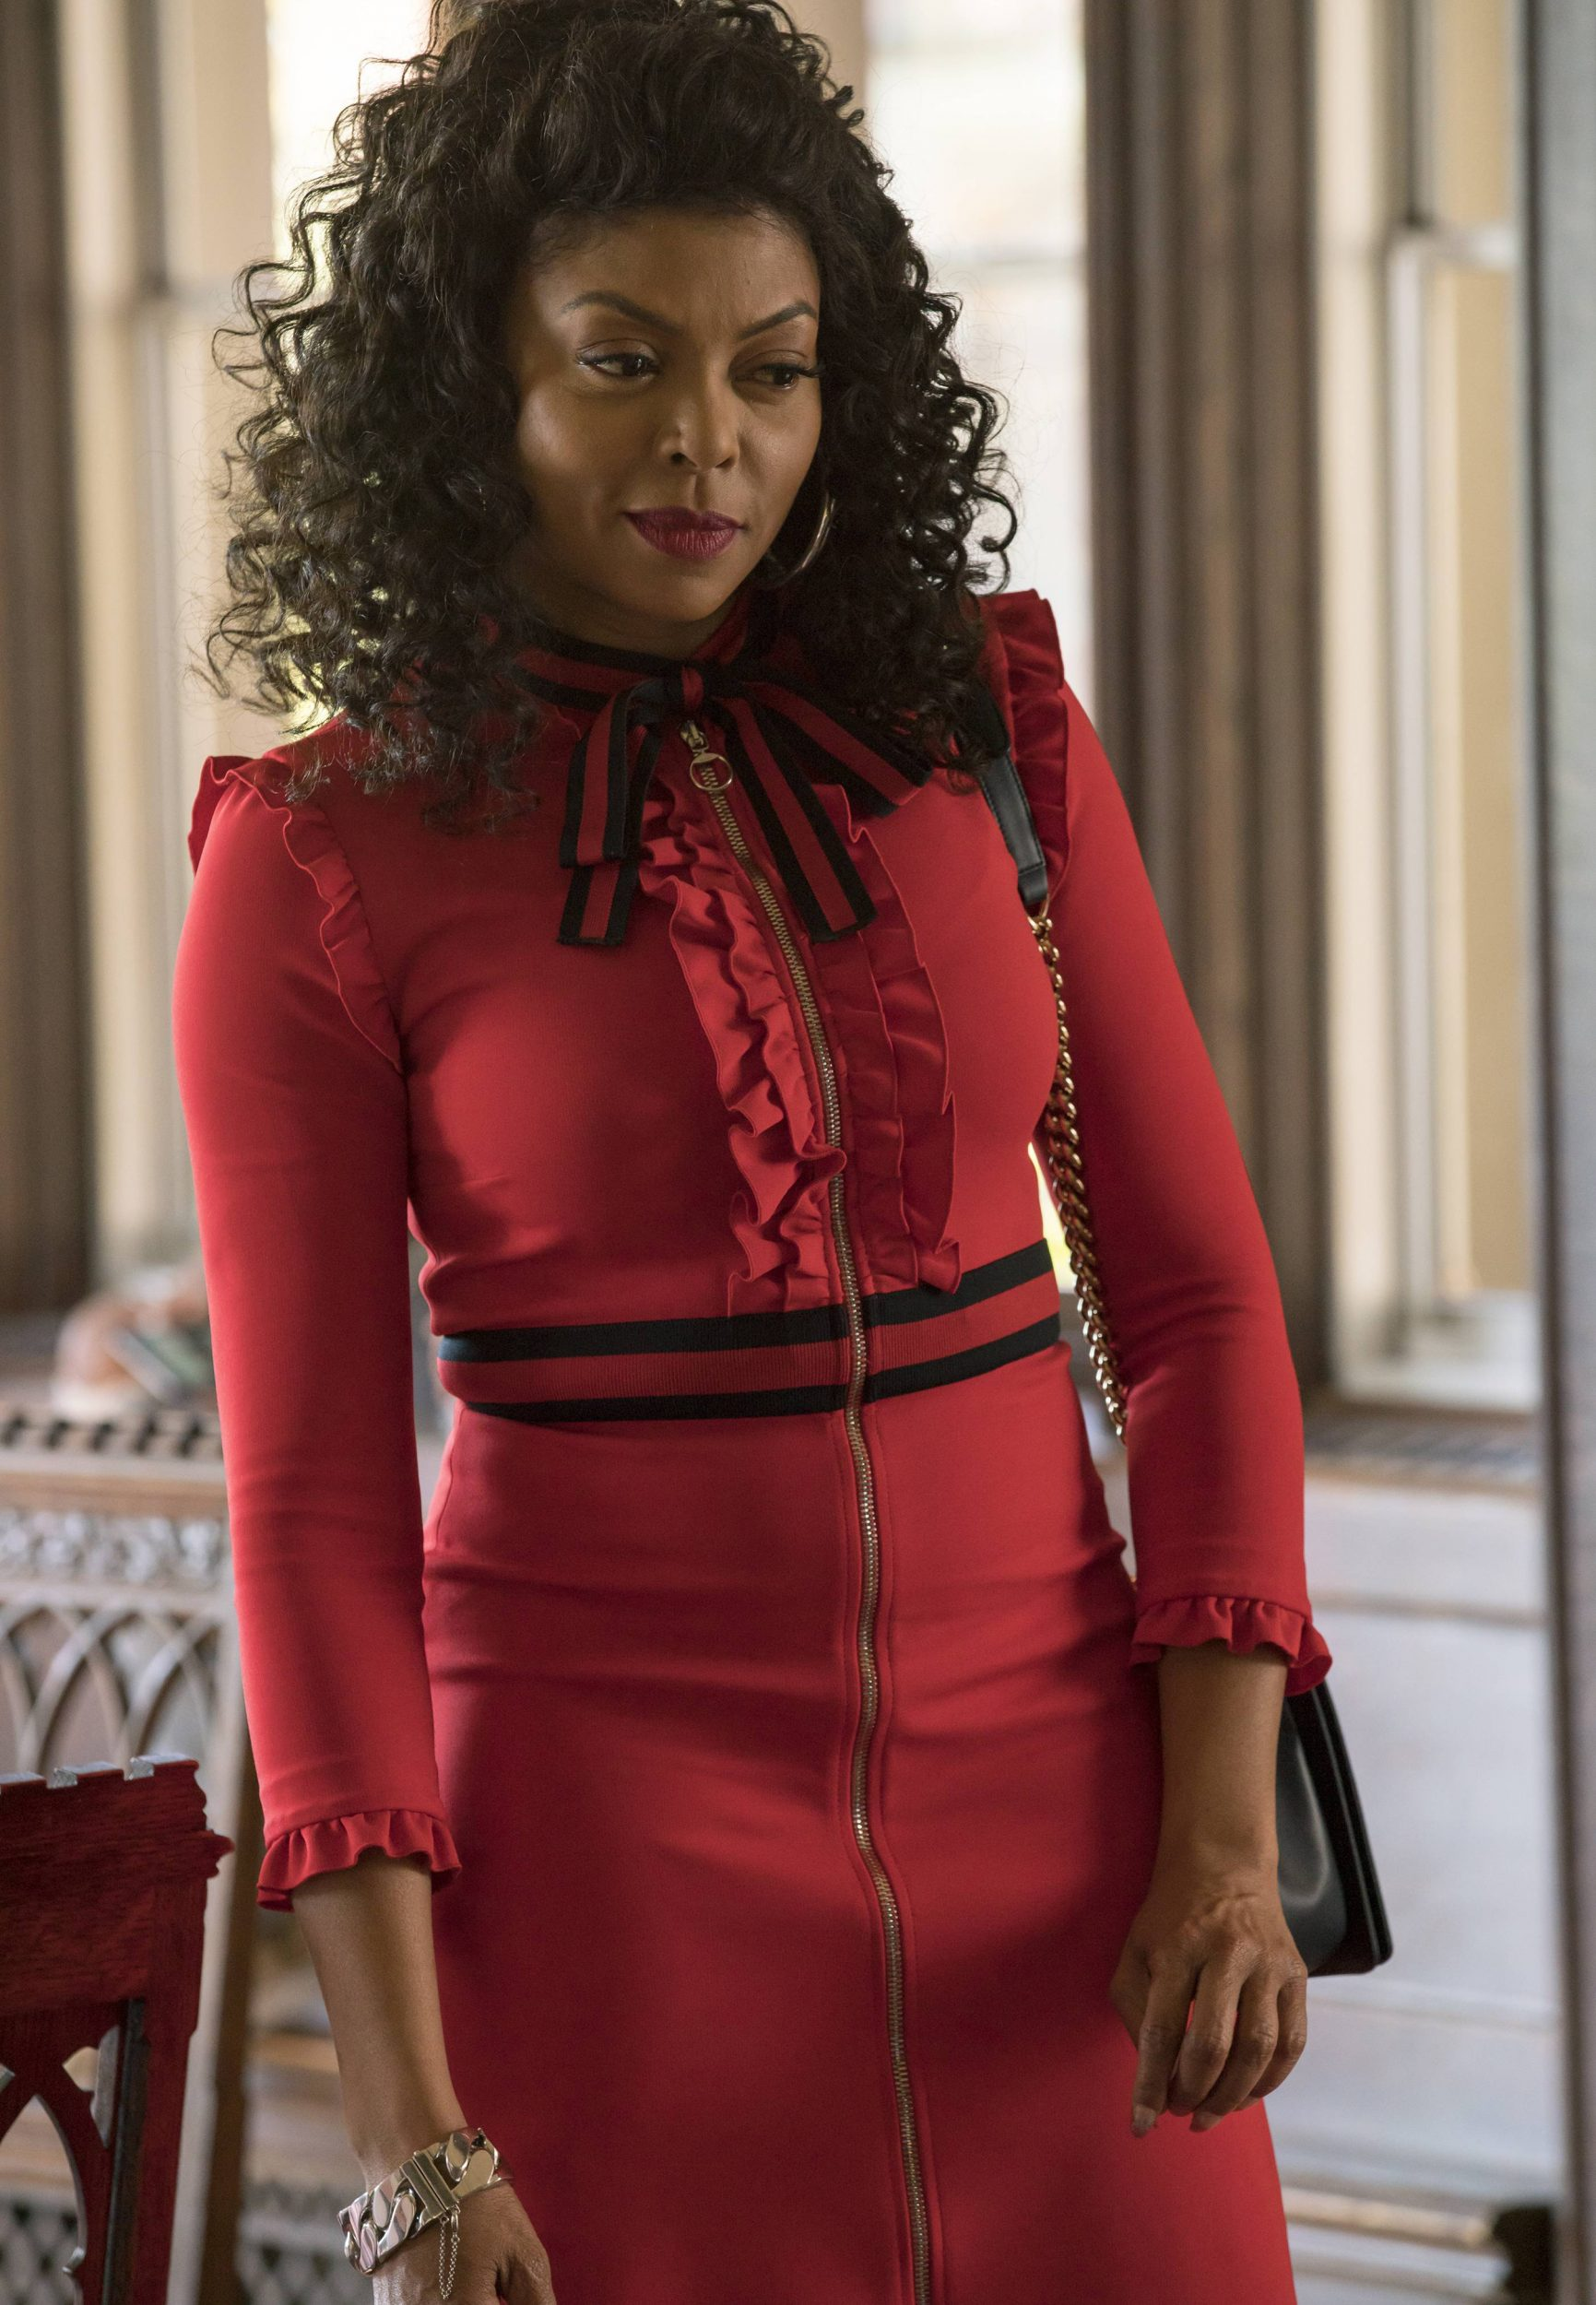 """EMPIRE: Taraji P. Henson in the """"Sound & Fury"""" spring premiere episode of EMPIRE airing Wednesday, March 22 (9:00-10:00 PM ET/PT) on FOX. ©2017 Fox Broadcasting Co. CR: Chuck Hodes/FOX"""